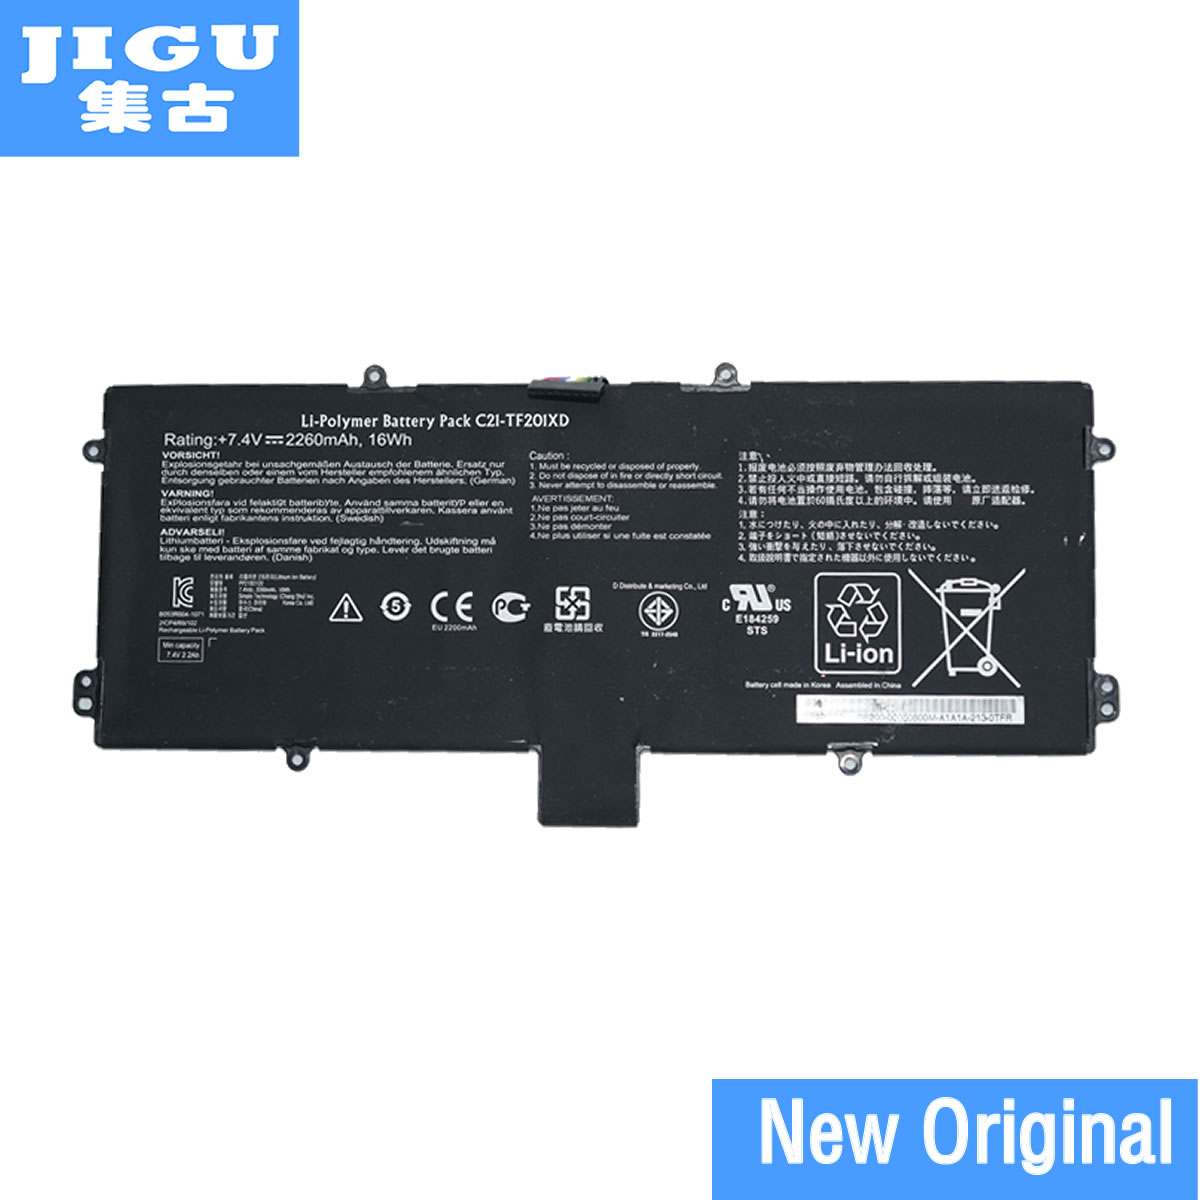 JIGU Original Laptop Battery C21-TF201XD C21-TF20IXD For ASUS For Eee Pad TF201 TF201XD